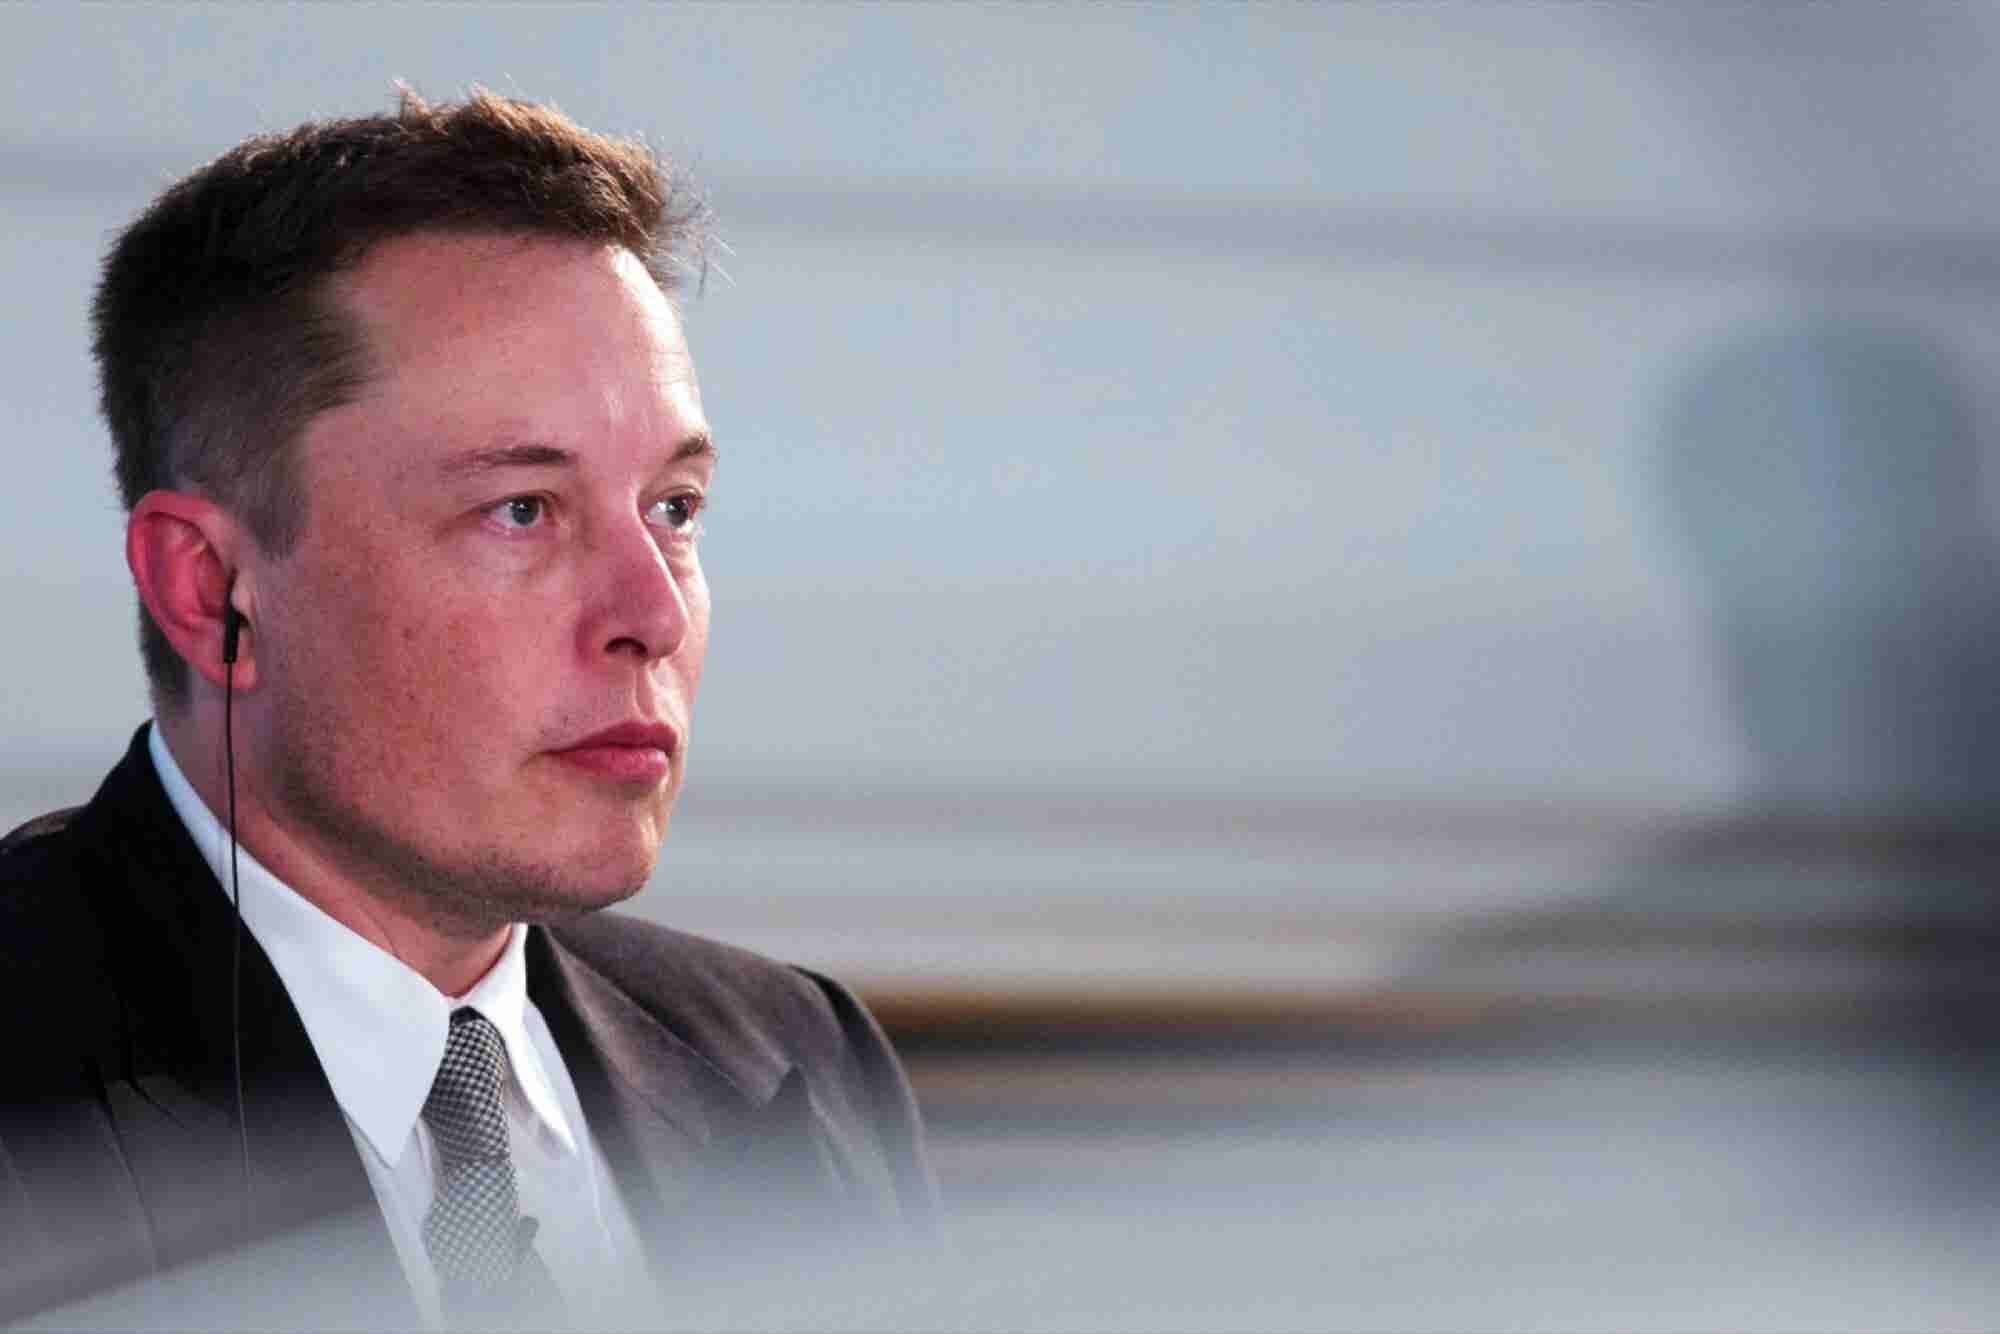 Tech Moguls Such as Musk and Bezos Declare Era of Artificial Intelligence